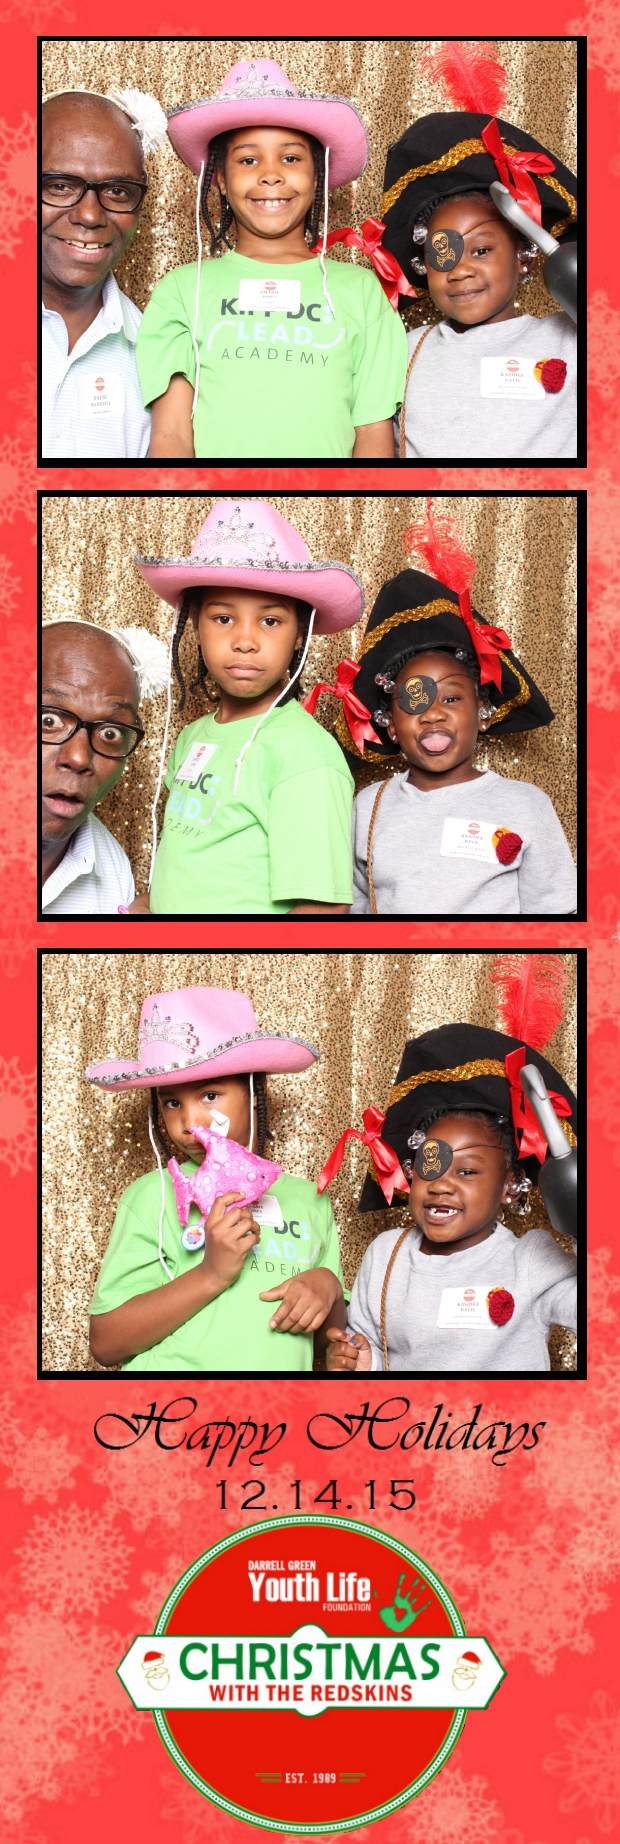 Guest House Events Photo Booth DGYLF Strips (22).jpg